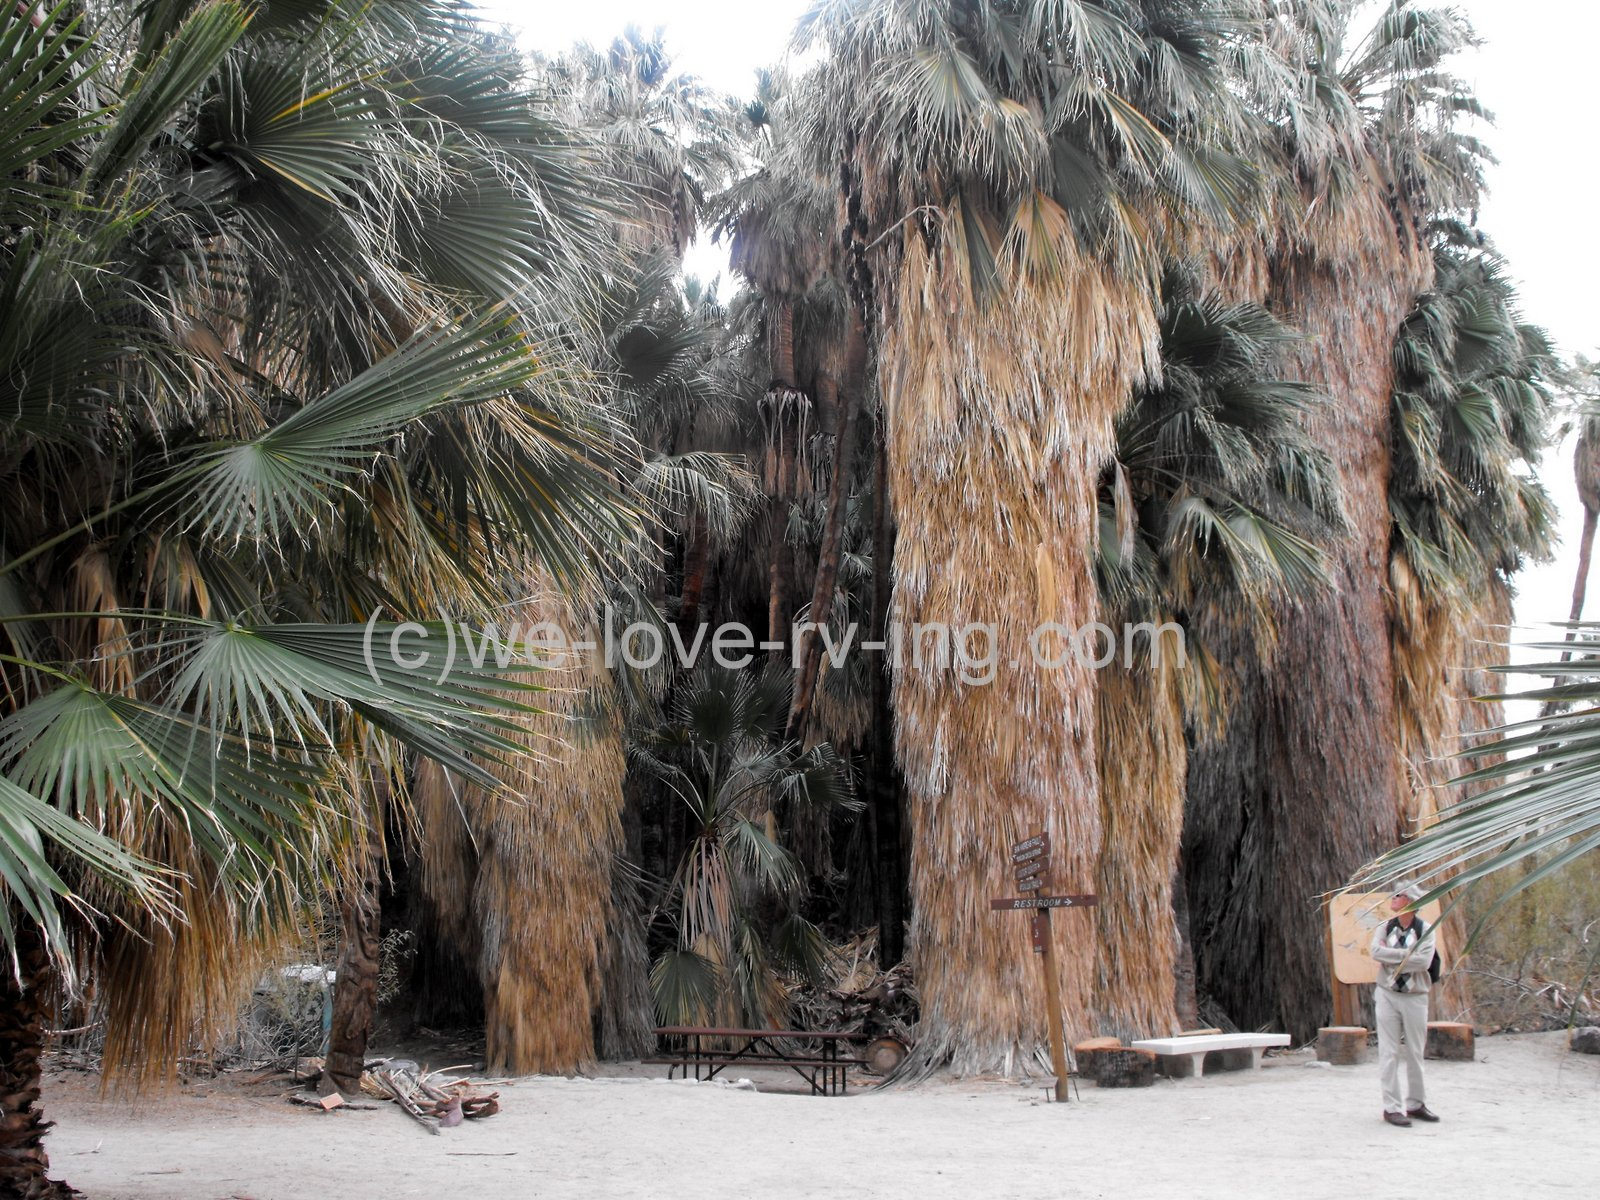 The Tall Trees Of Oasis At Visitor Center